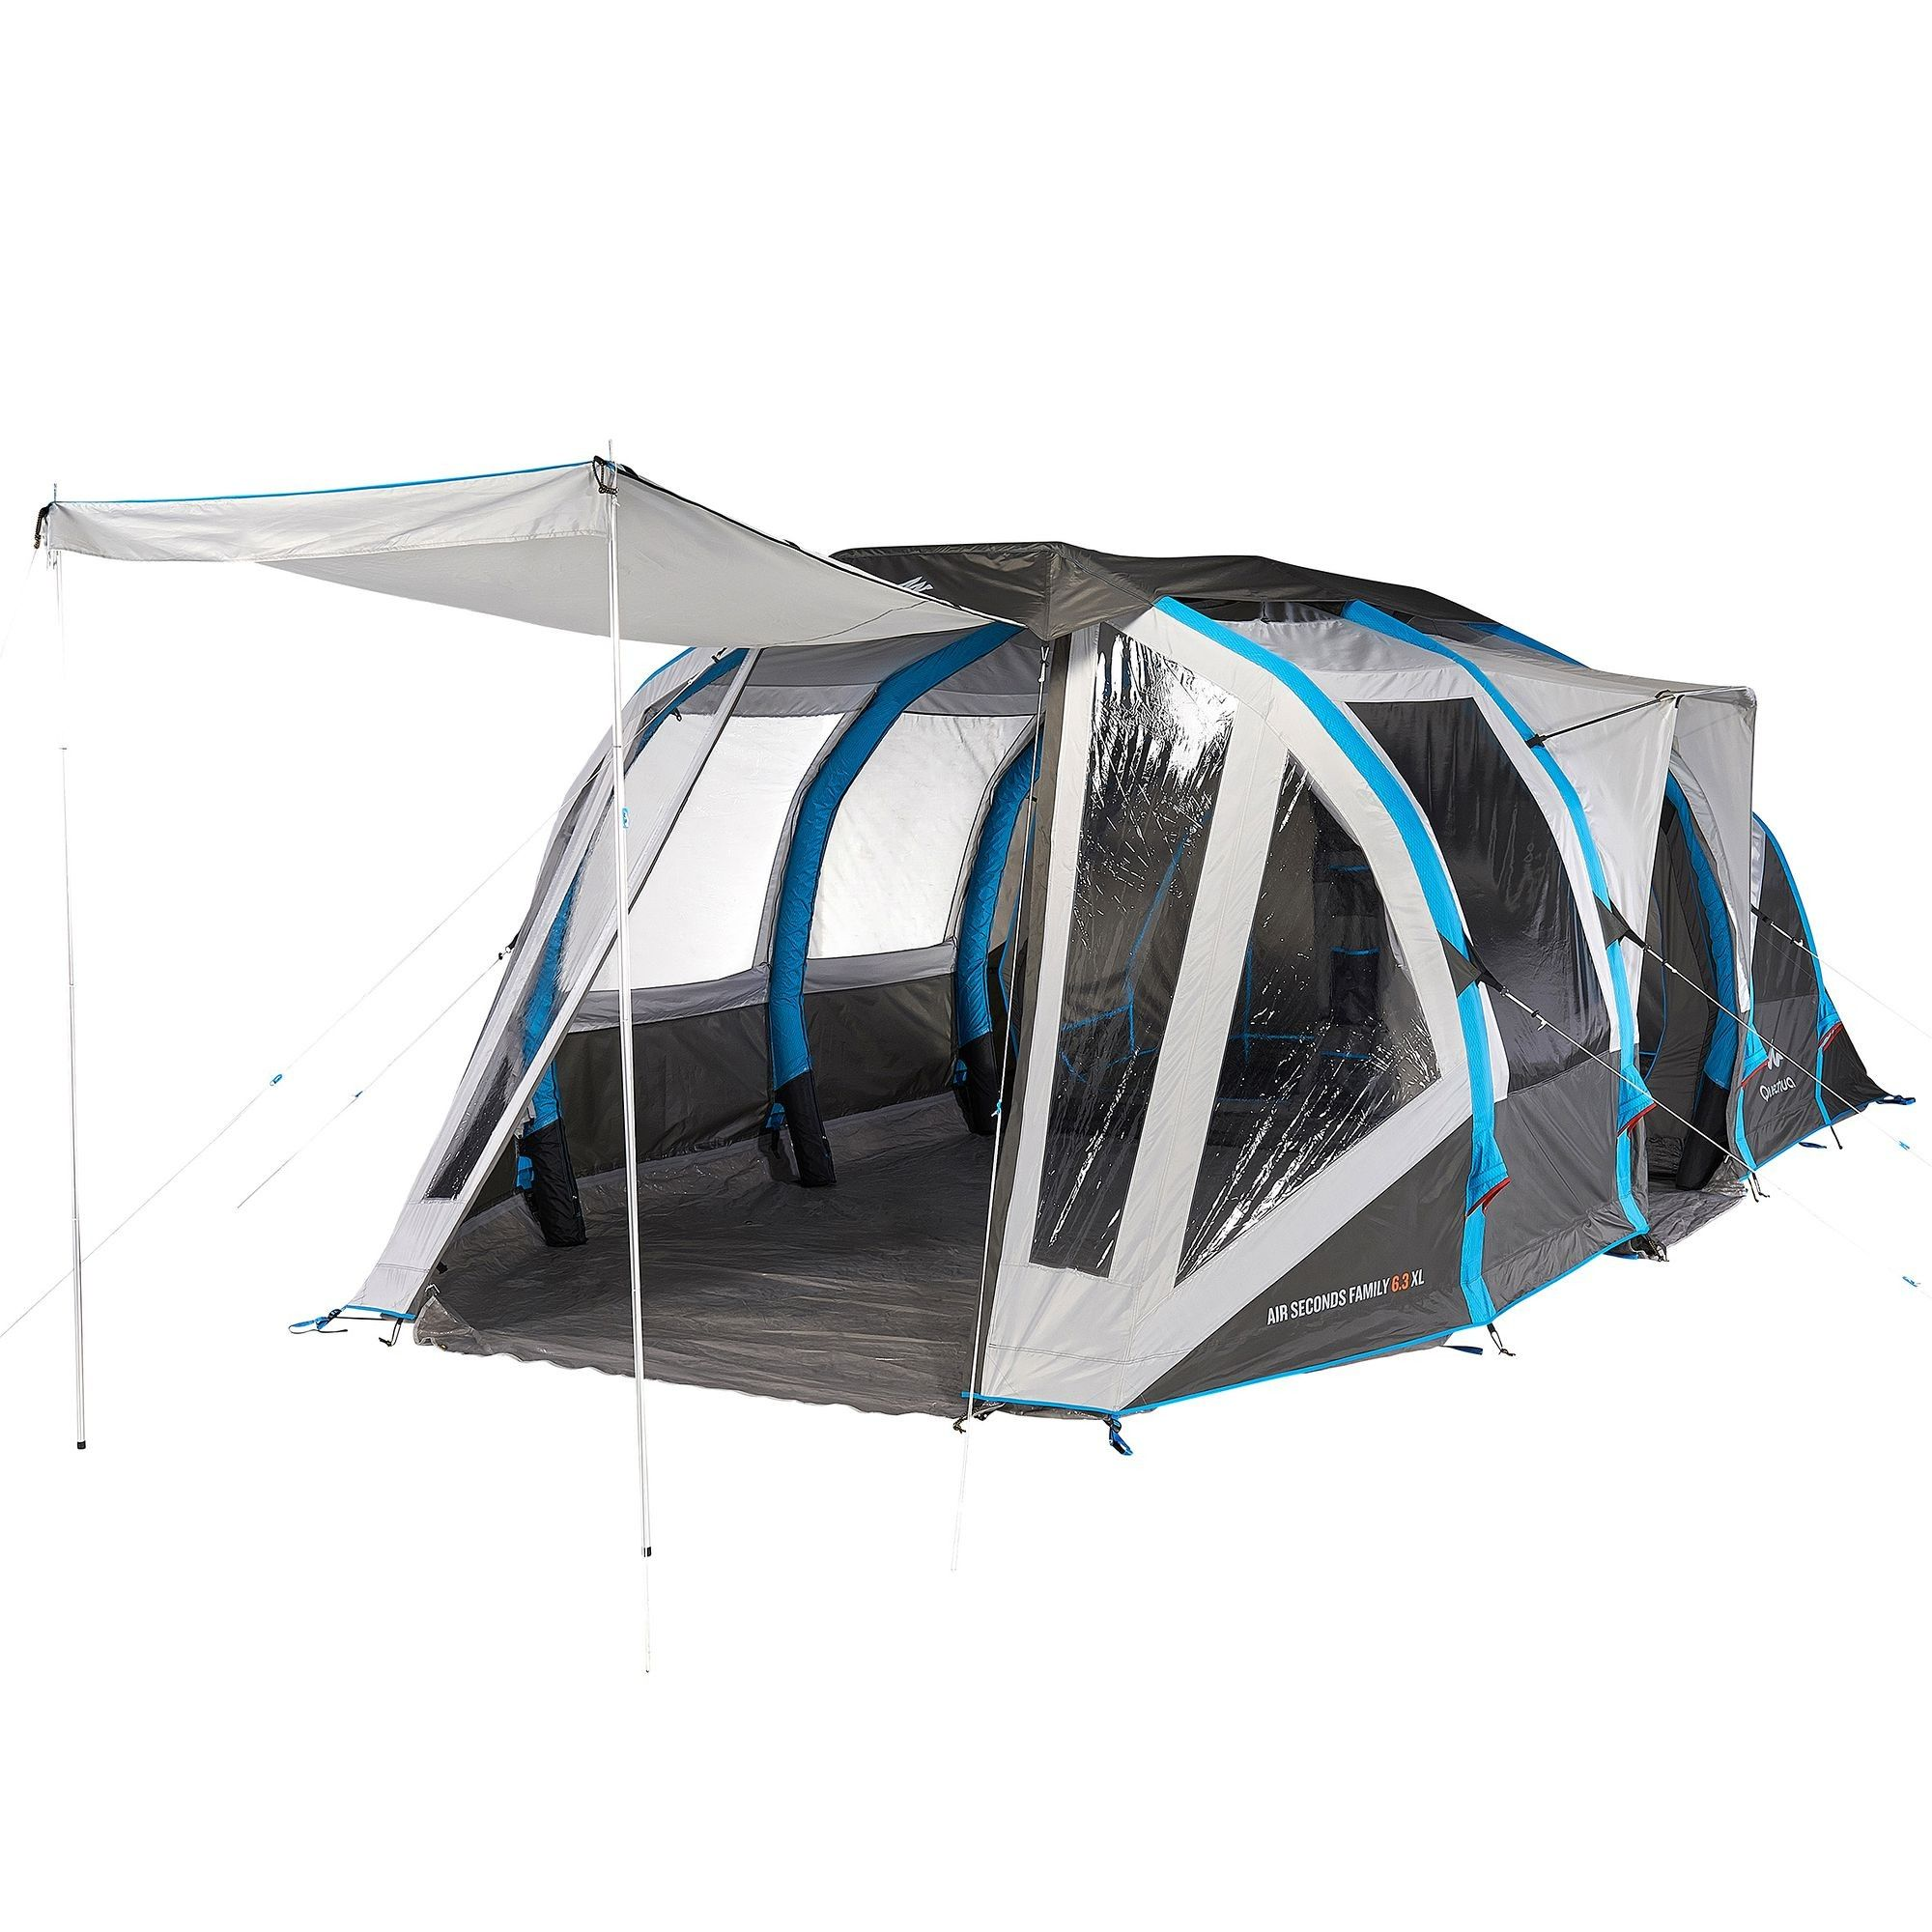 Tente Air Seconds Family 6 3xl Quechua Tente Decathlon Ventes Pas Cher Com Tente Gonflable Tente Familiale Tente Decathlon